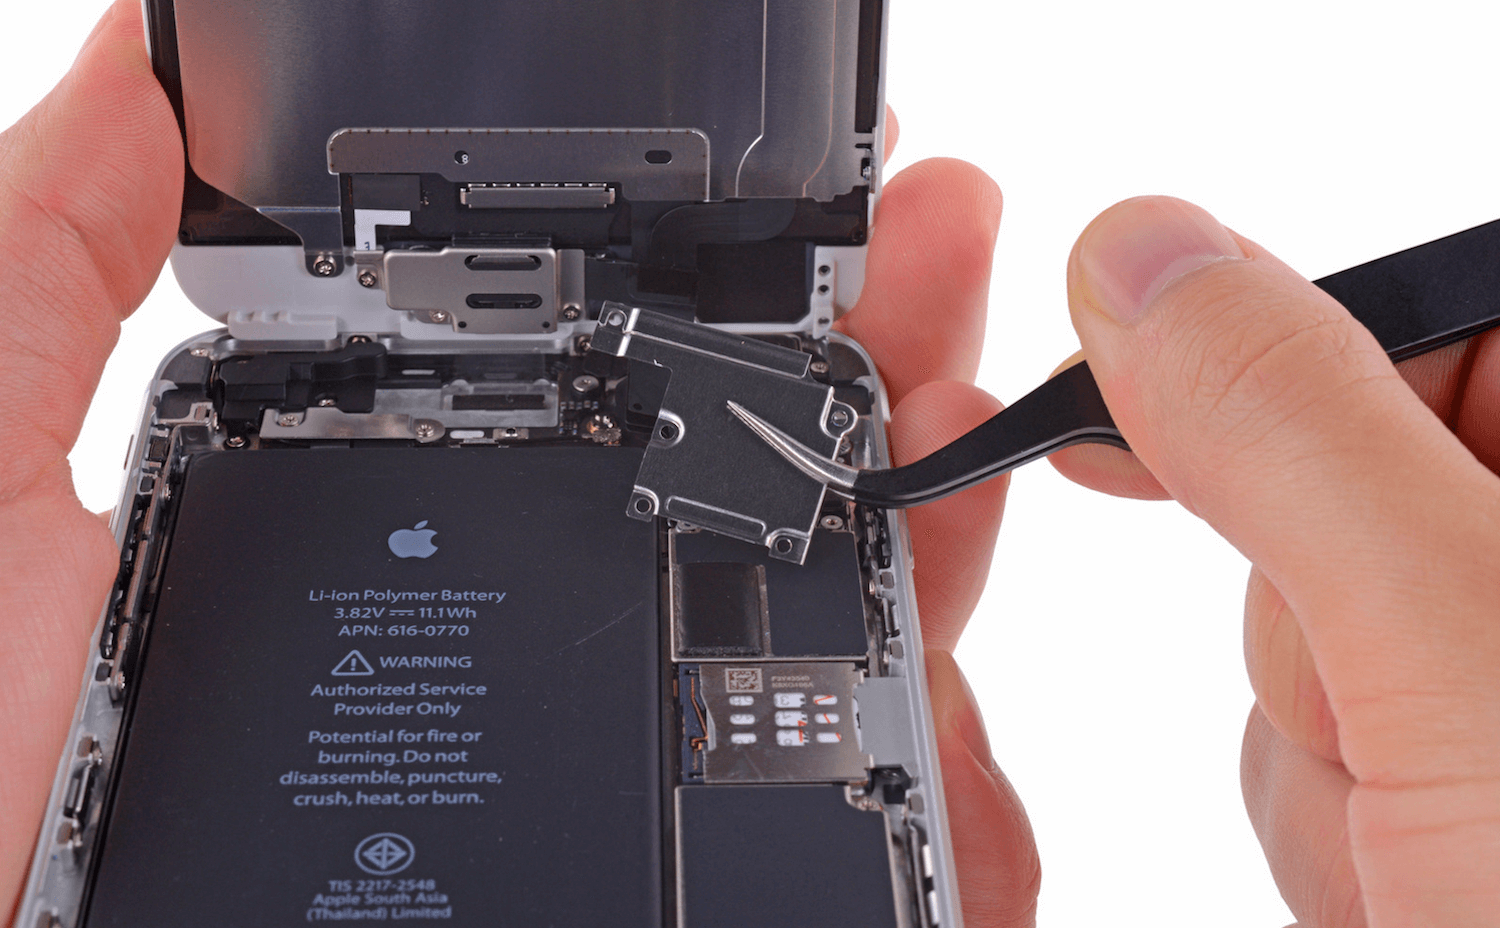 Responsible ModMac: problems with display and battery iPhone